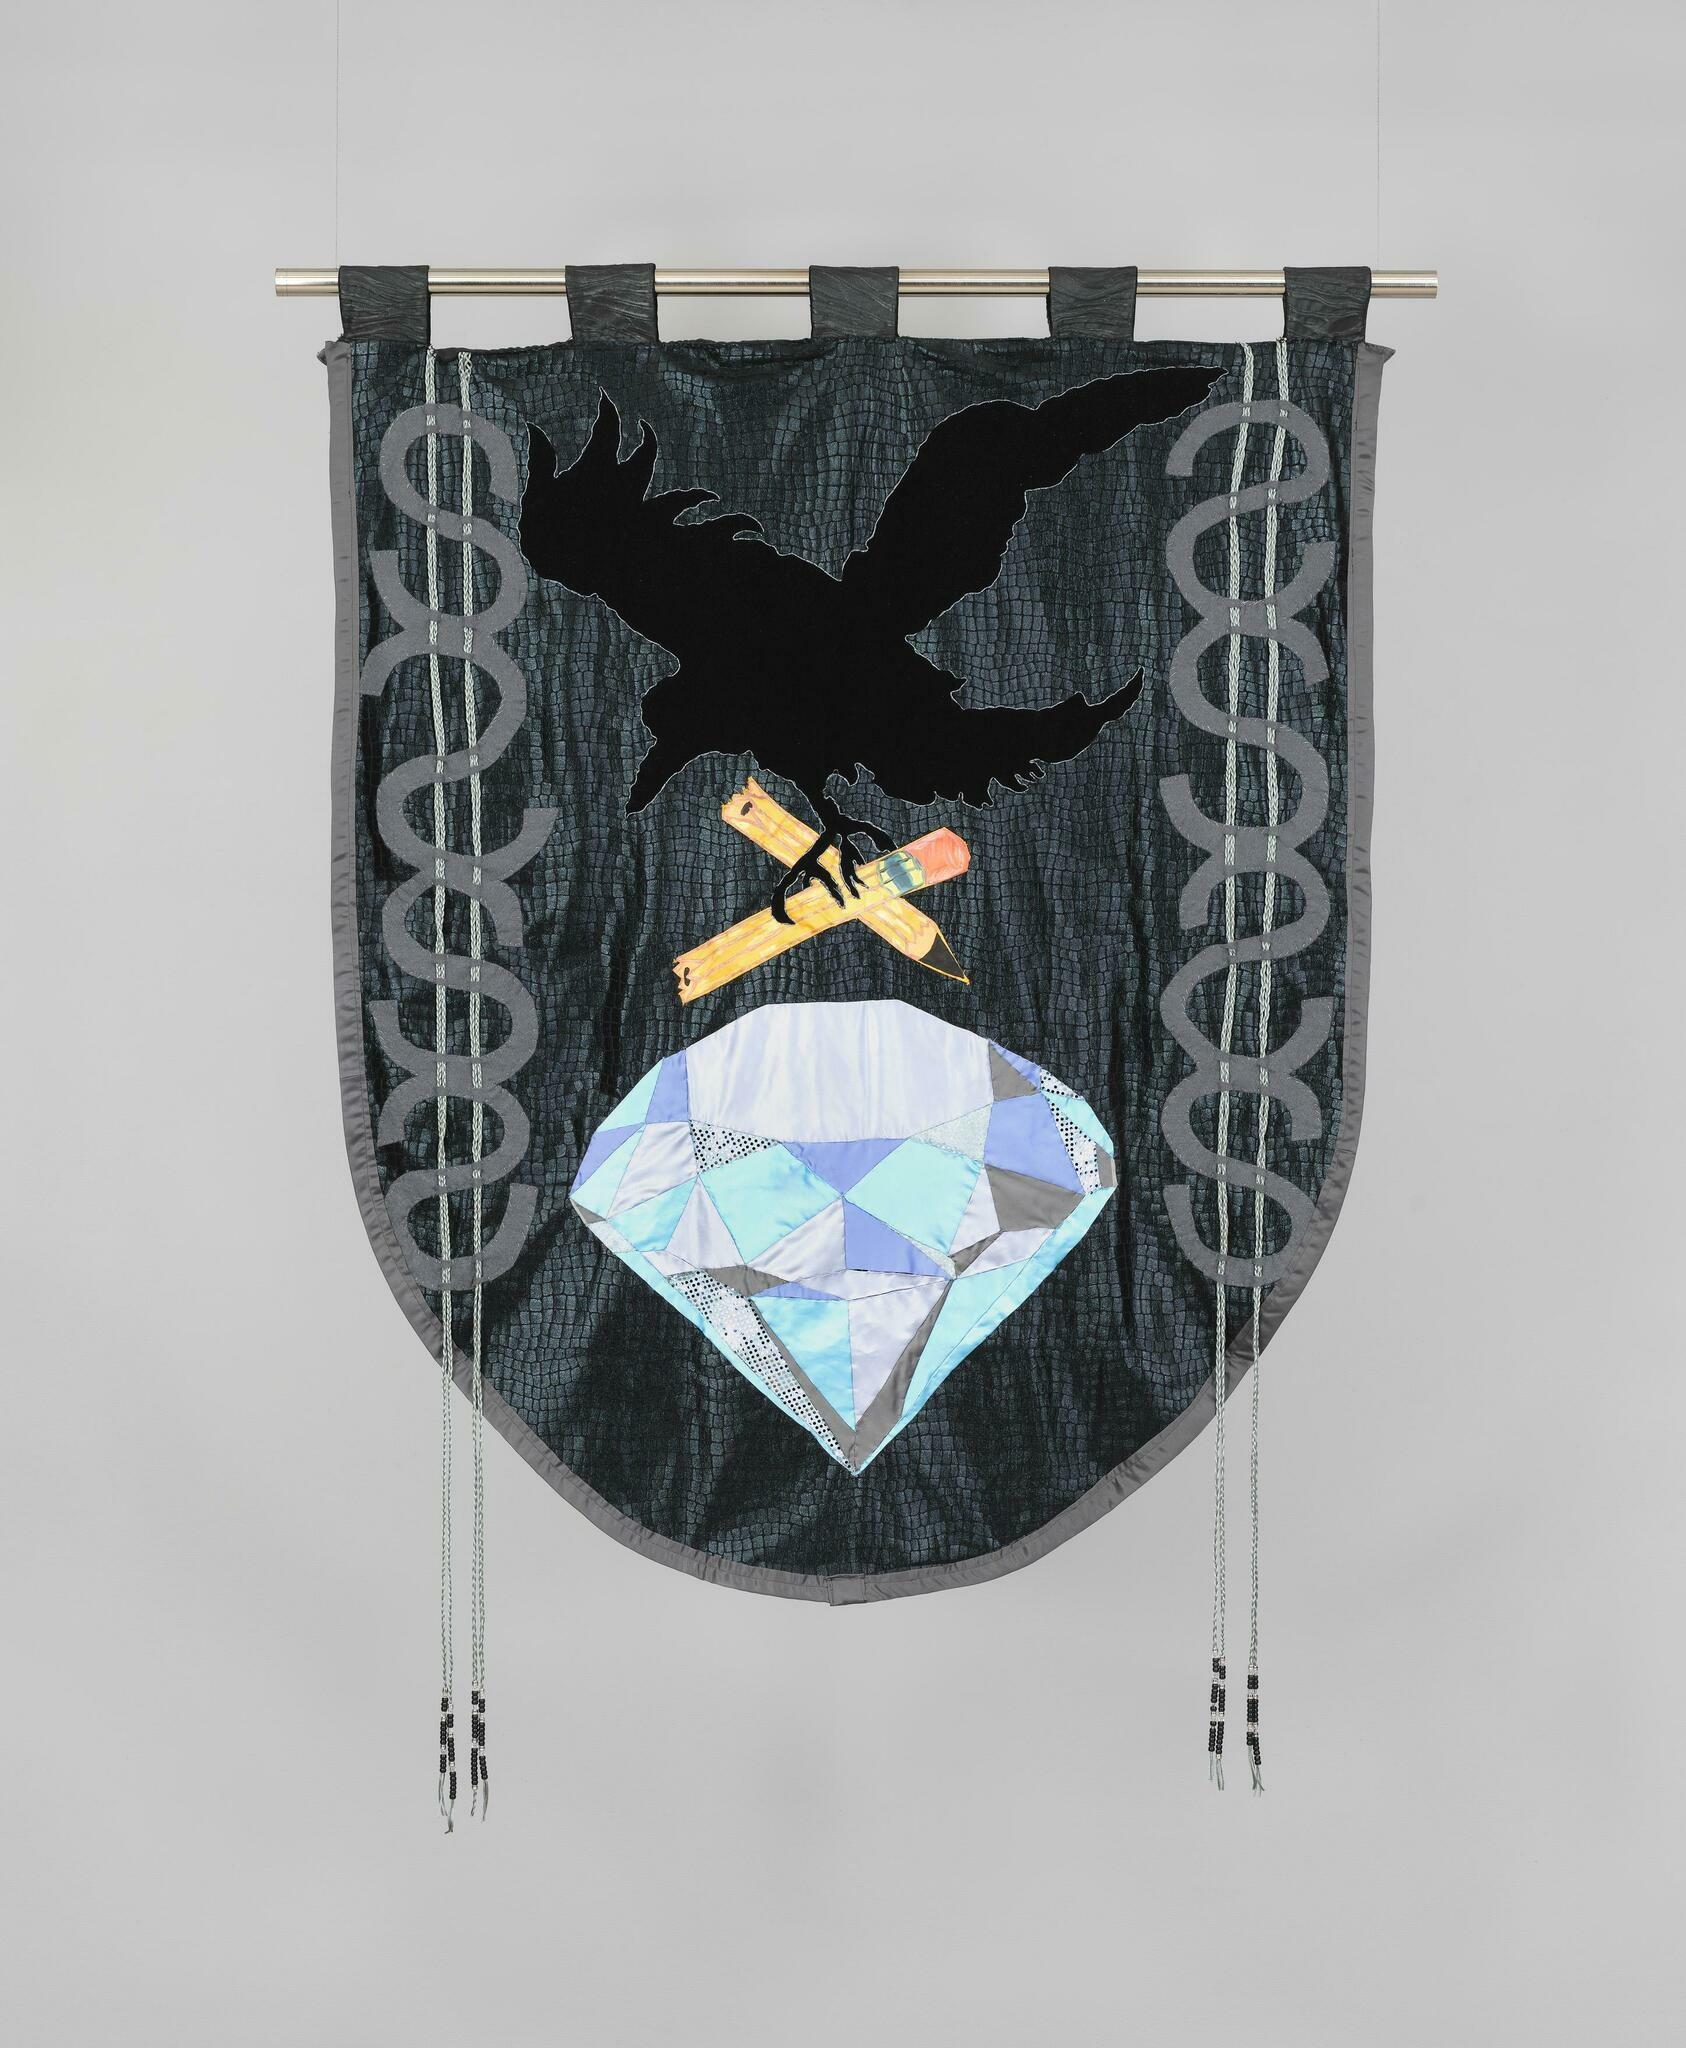 A black bird grasps two halves of a broken yellow pencil above a large diamond on a dark grey quilted banner.